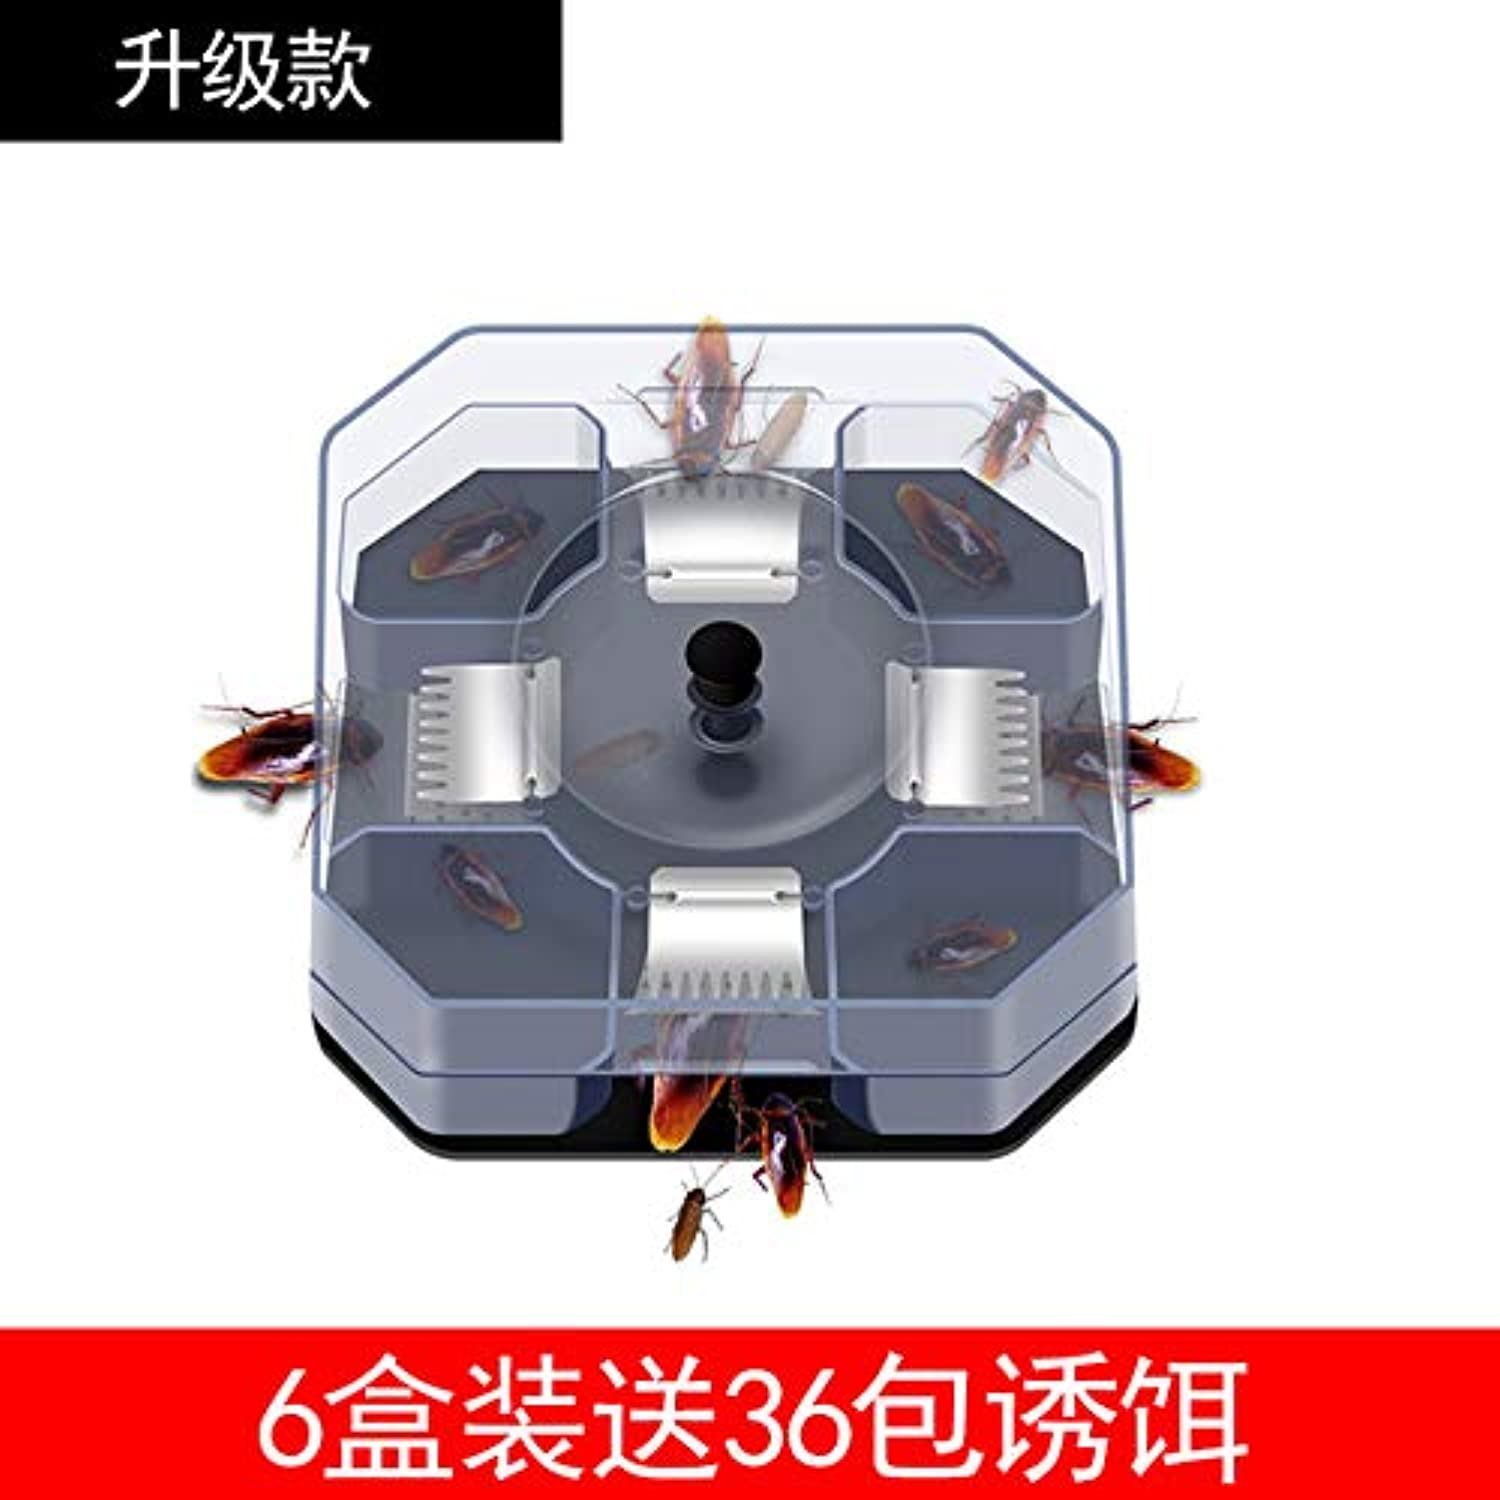 Cockroach Trap Fifth Upgrade Safe Efficient Anti Cockroaches Killer Plus Large Repeller No Pollute for Home Office Kitchen   36 Packets of